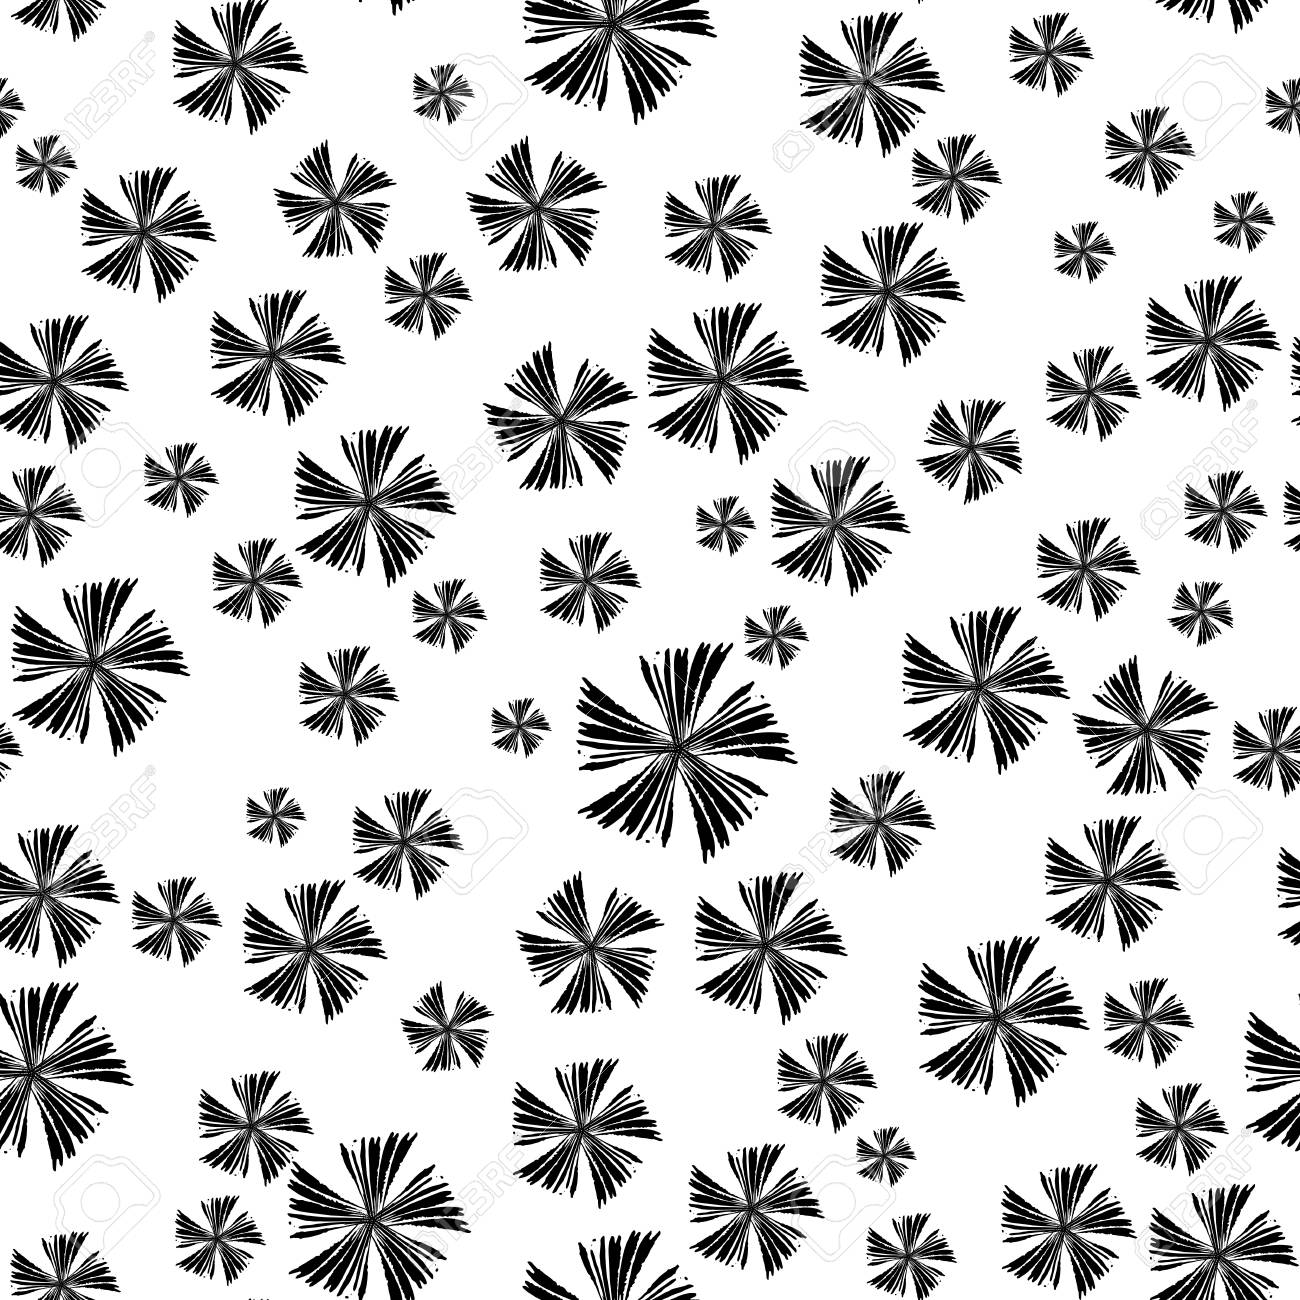 Abstract Simple Seamless Pattern Cute Background With Black